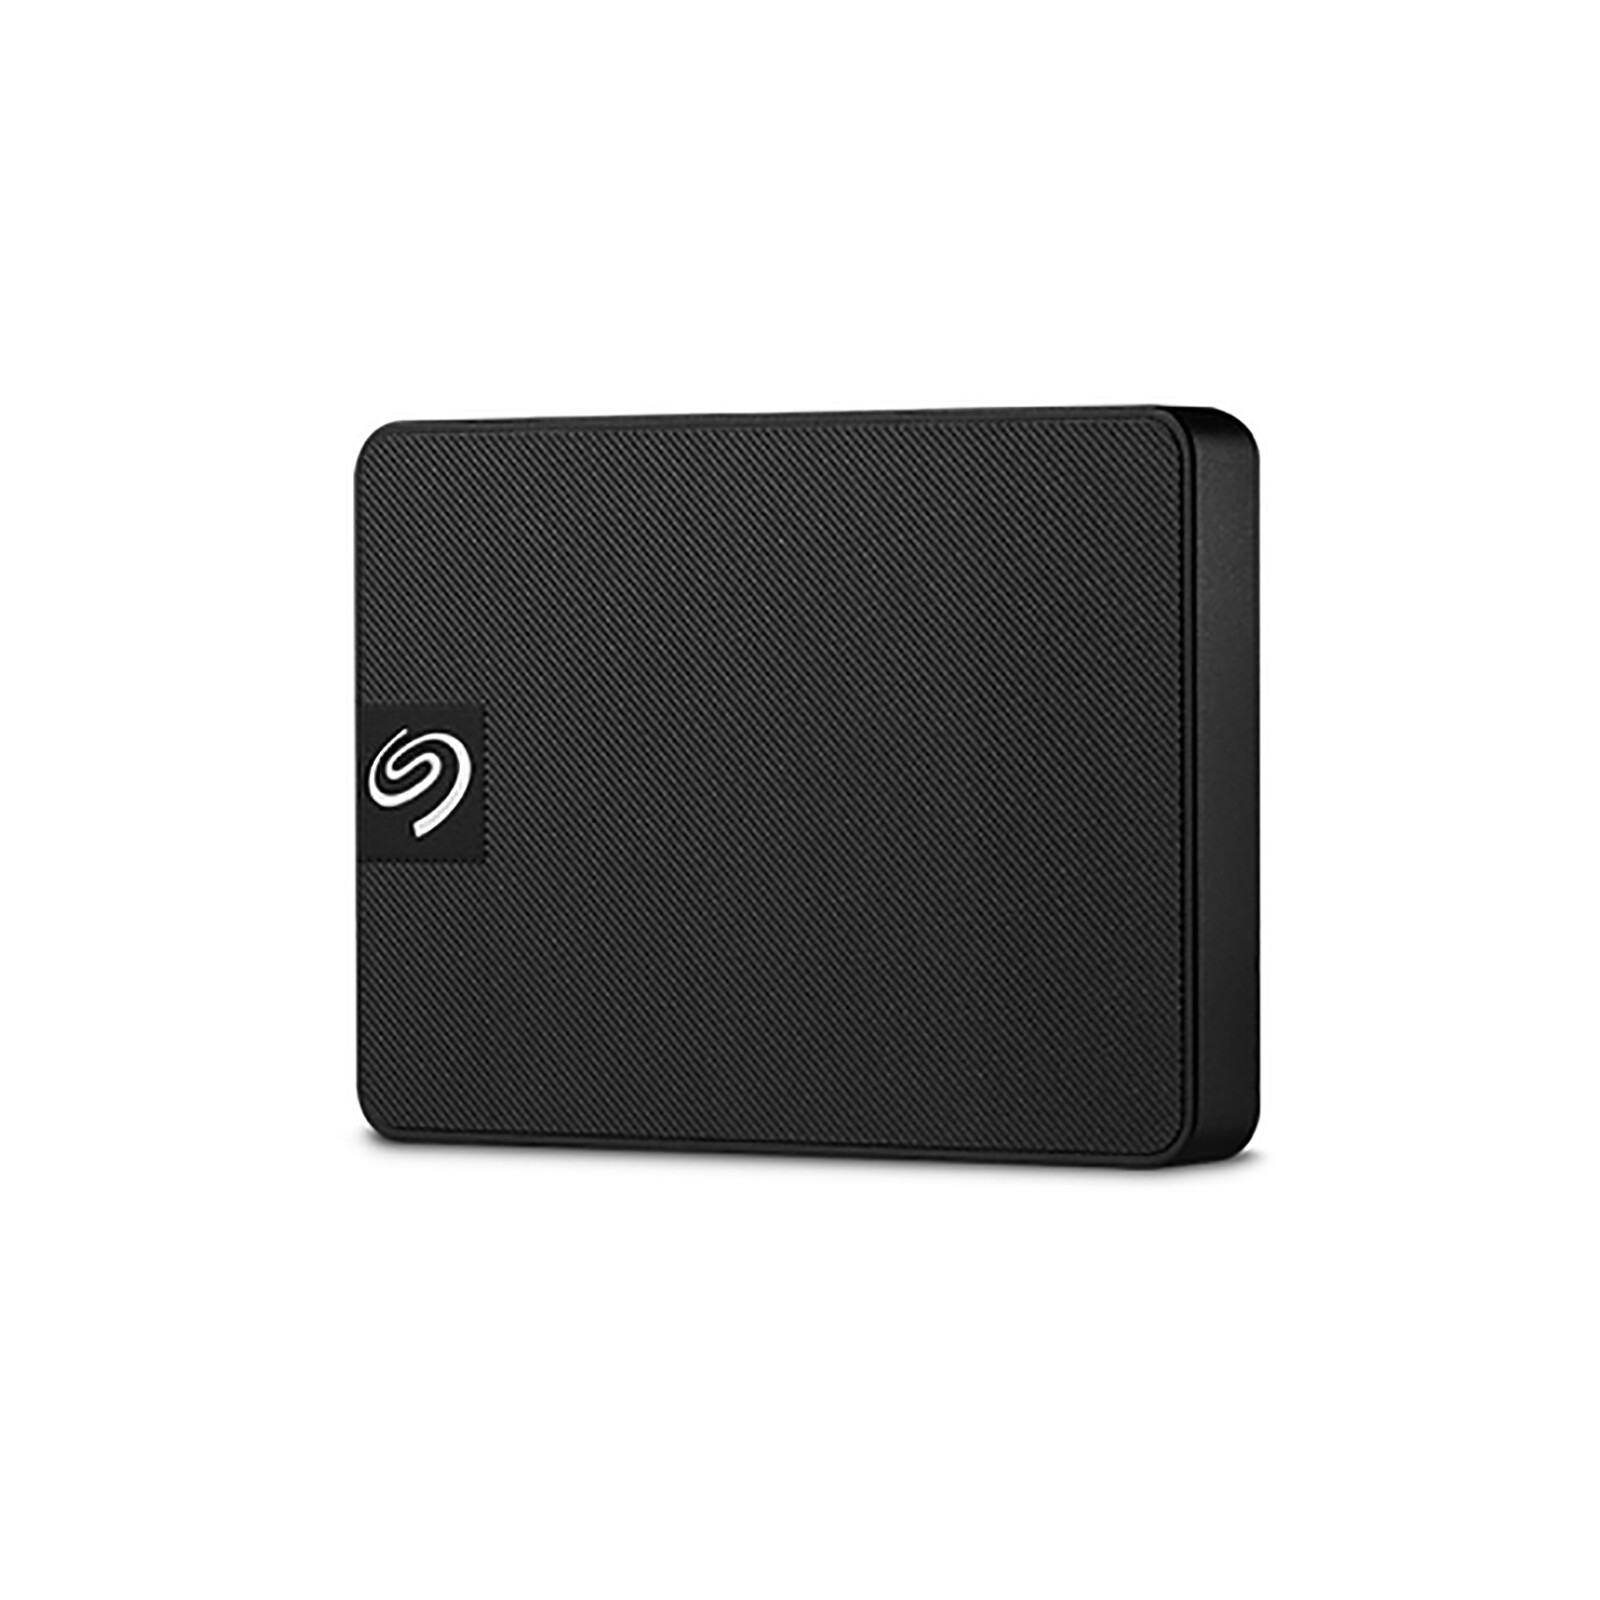 Seagate Expansion SSD 500GB extern USB 3.0